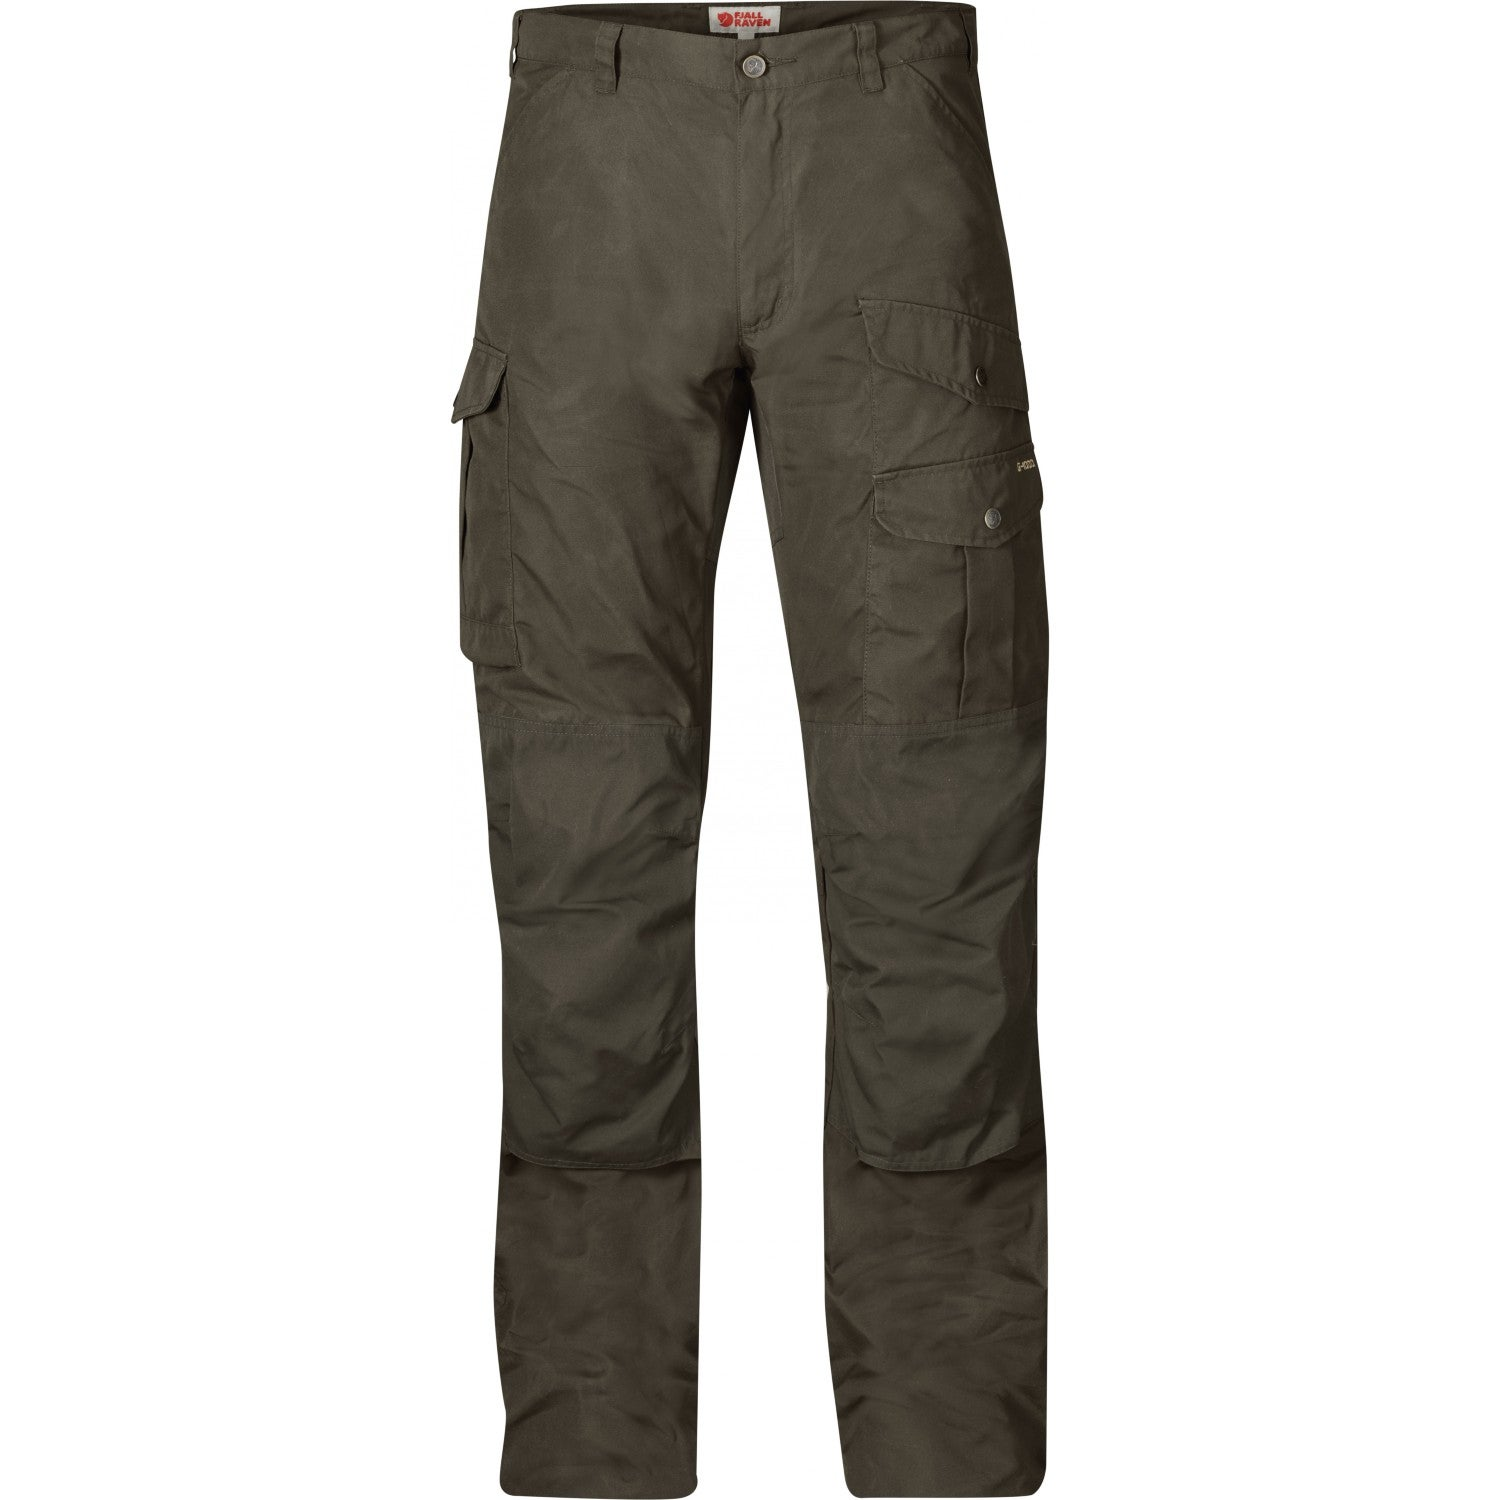 Fjallraven Barents Pro Long Walking Pants